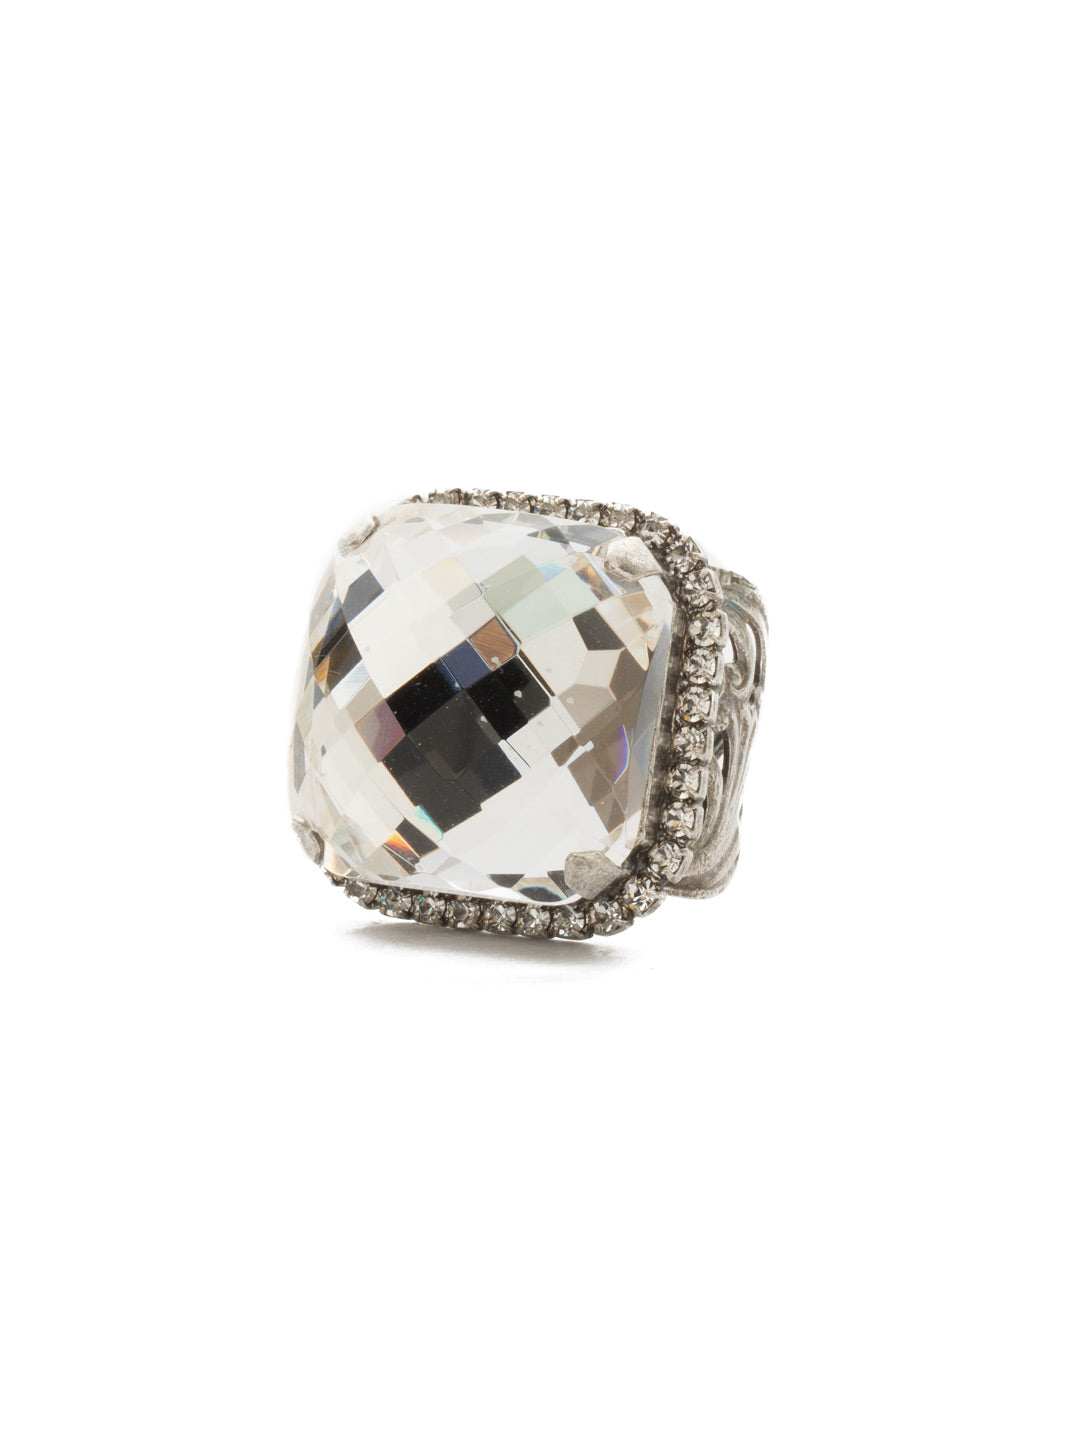 Kaleidoscope Cocktail Ring - RCL18ASSNB